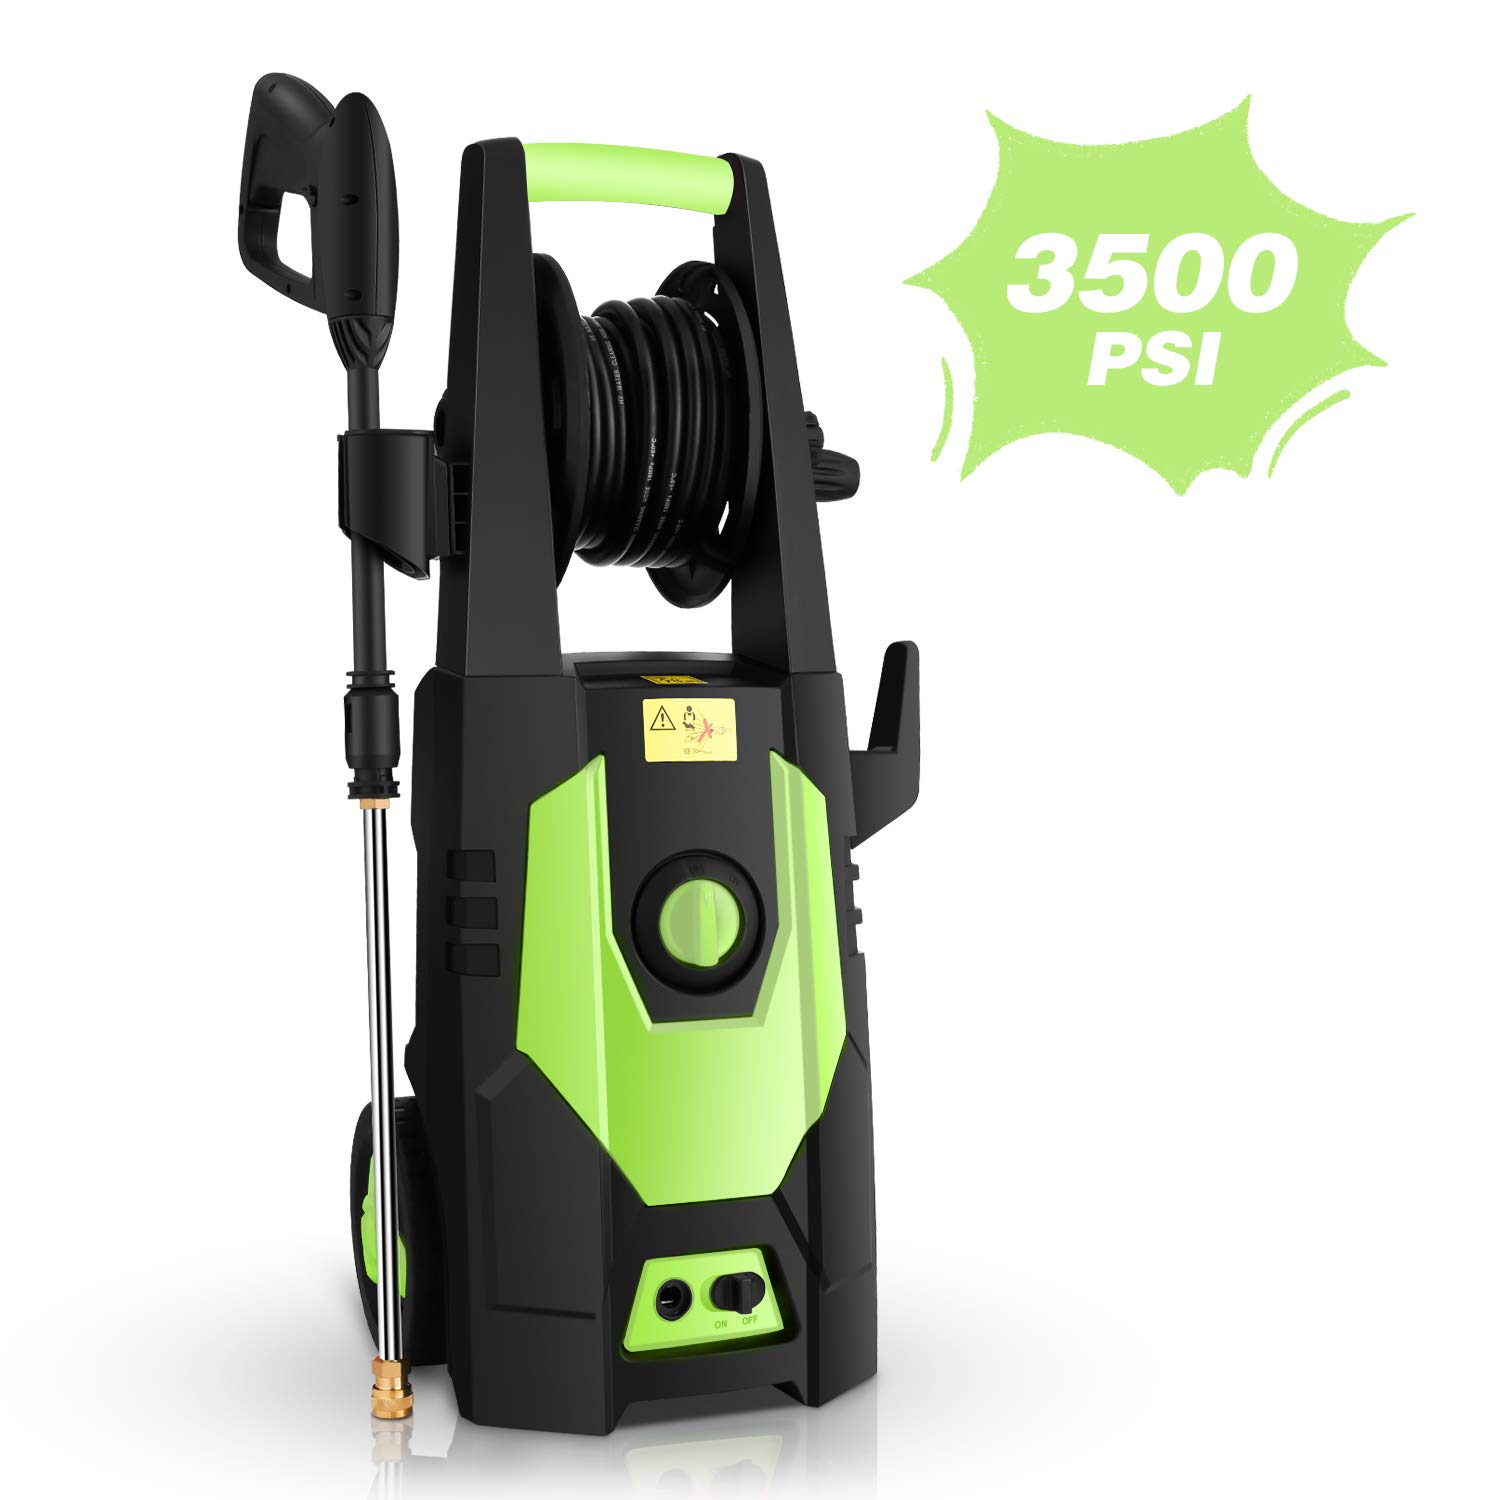 mrliance 3500PSI Electric Pressure Washer 2.0GPM Power Washer 1800W High Pressure Washer Cleaner Machine with Spray Gun, Hose Reel, Brush, and 4 Adjustable Nozzle (Green) by mrliance